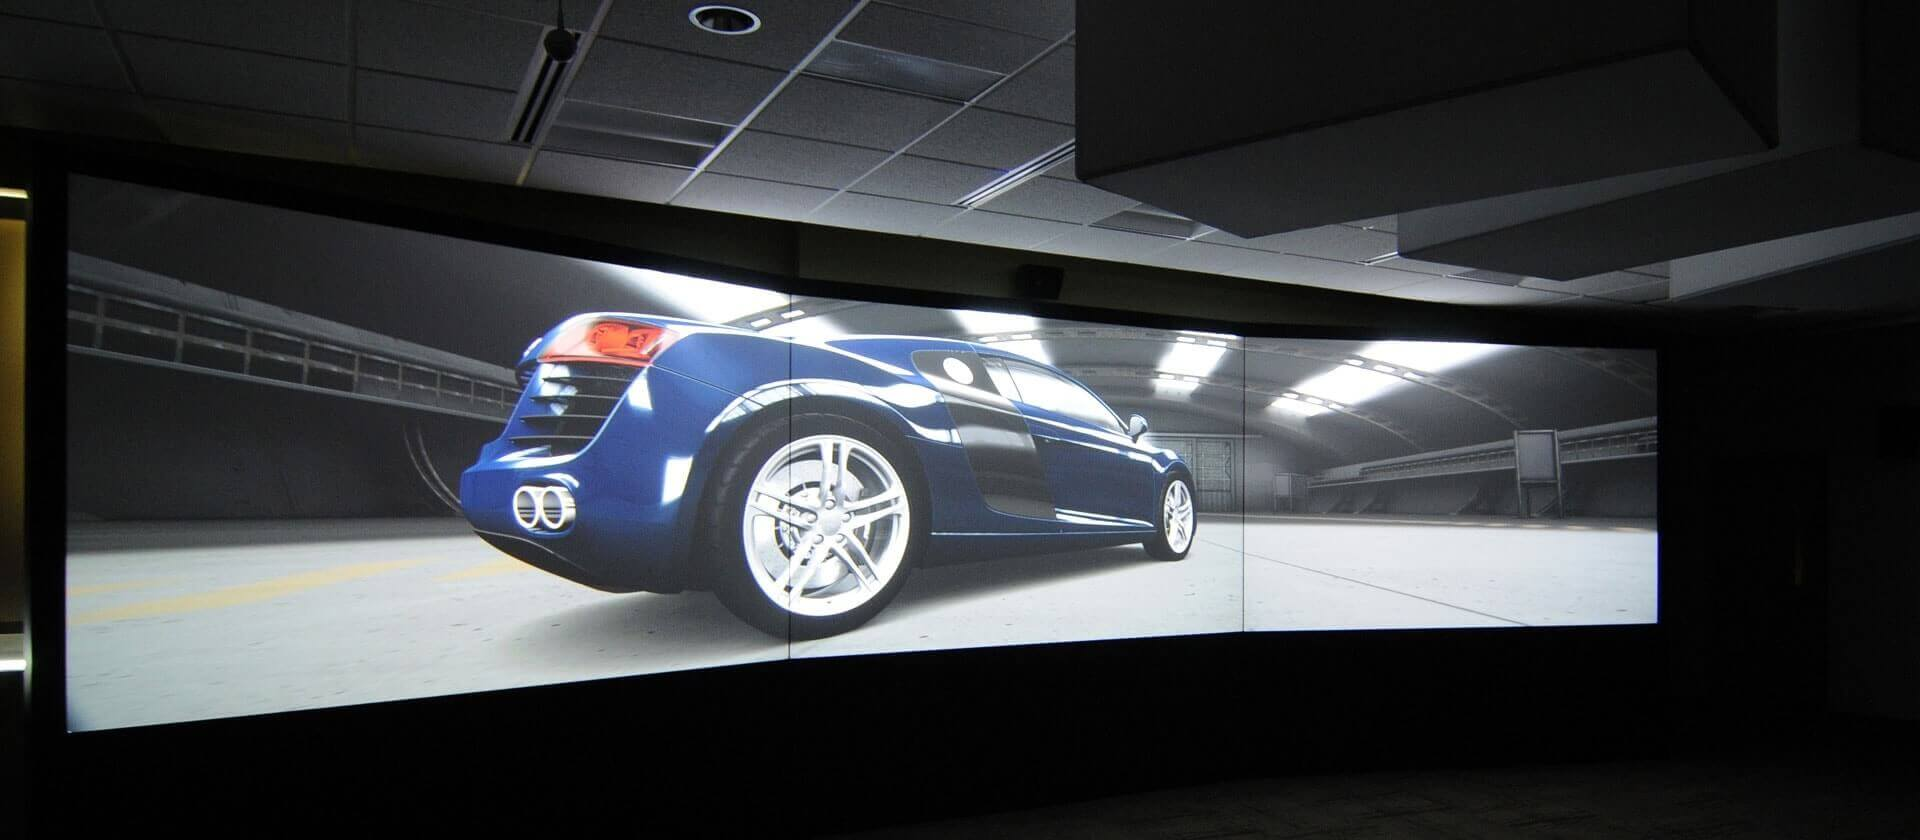 custom large scale high resolution university projection